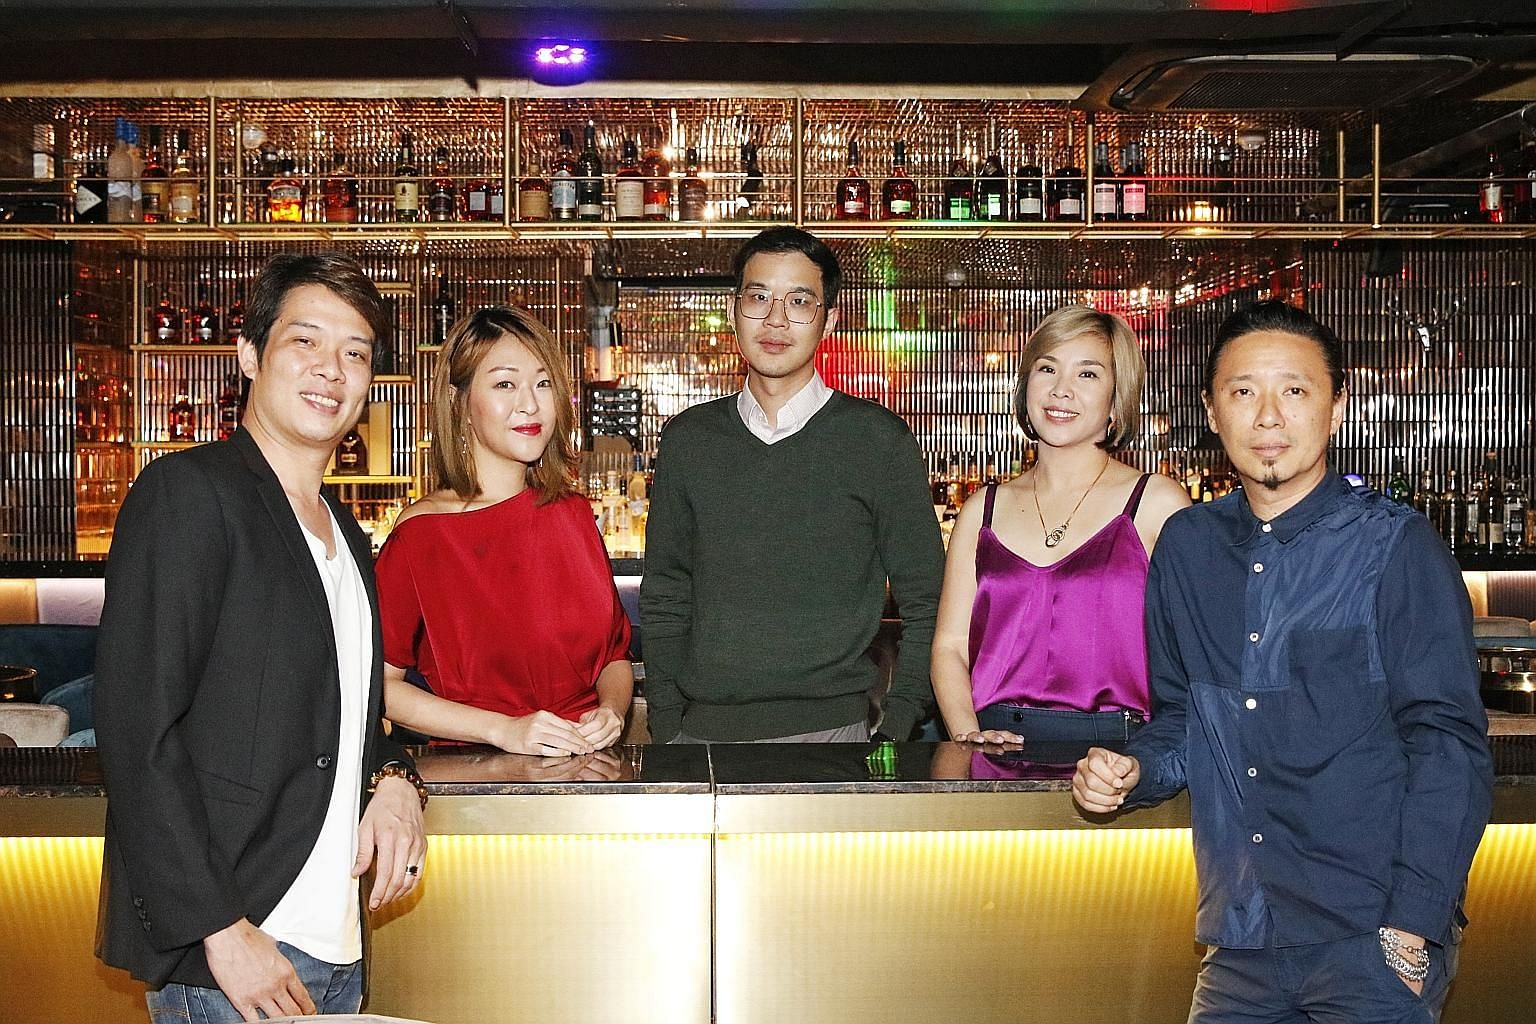 The team behind Eliza comprises (from left) former Shanghai Dolly managing director Gordon Foo; Ms Sandra Sim, a former restaurateur in Shanghai; bartender Sam Wong; Ms Tay Eu-Yen, who co-founded now-defunct popular club The Butter Factory; and DJ Al